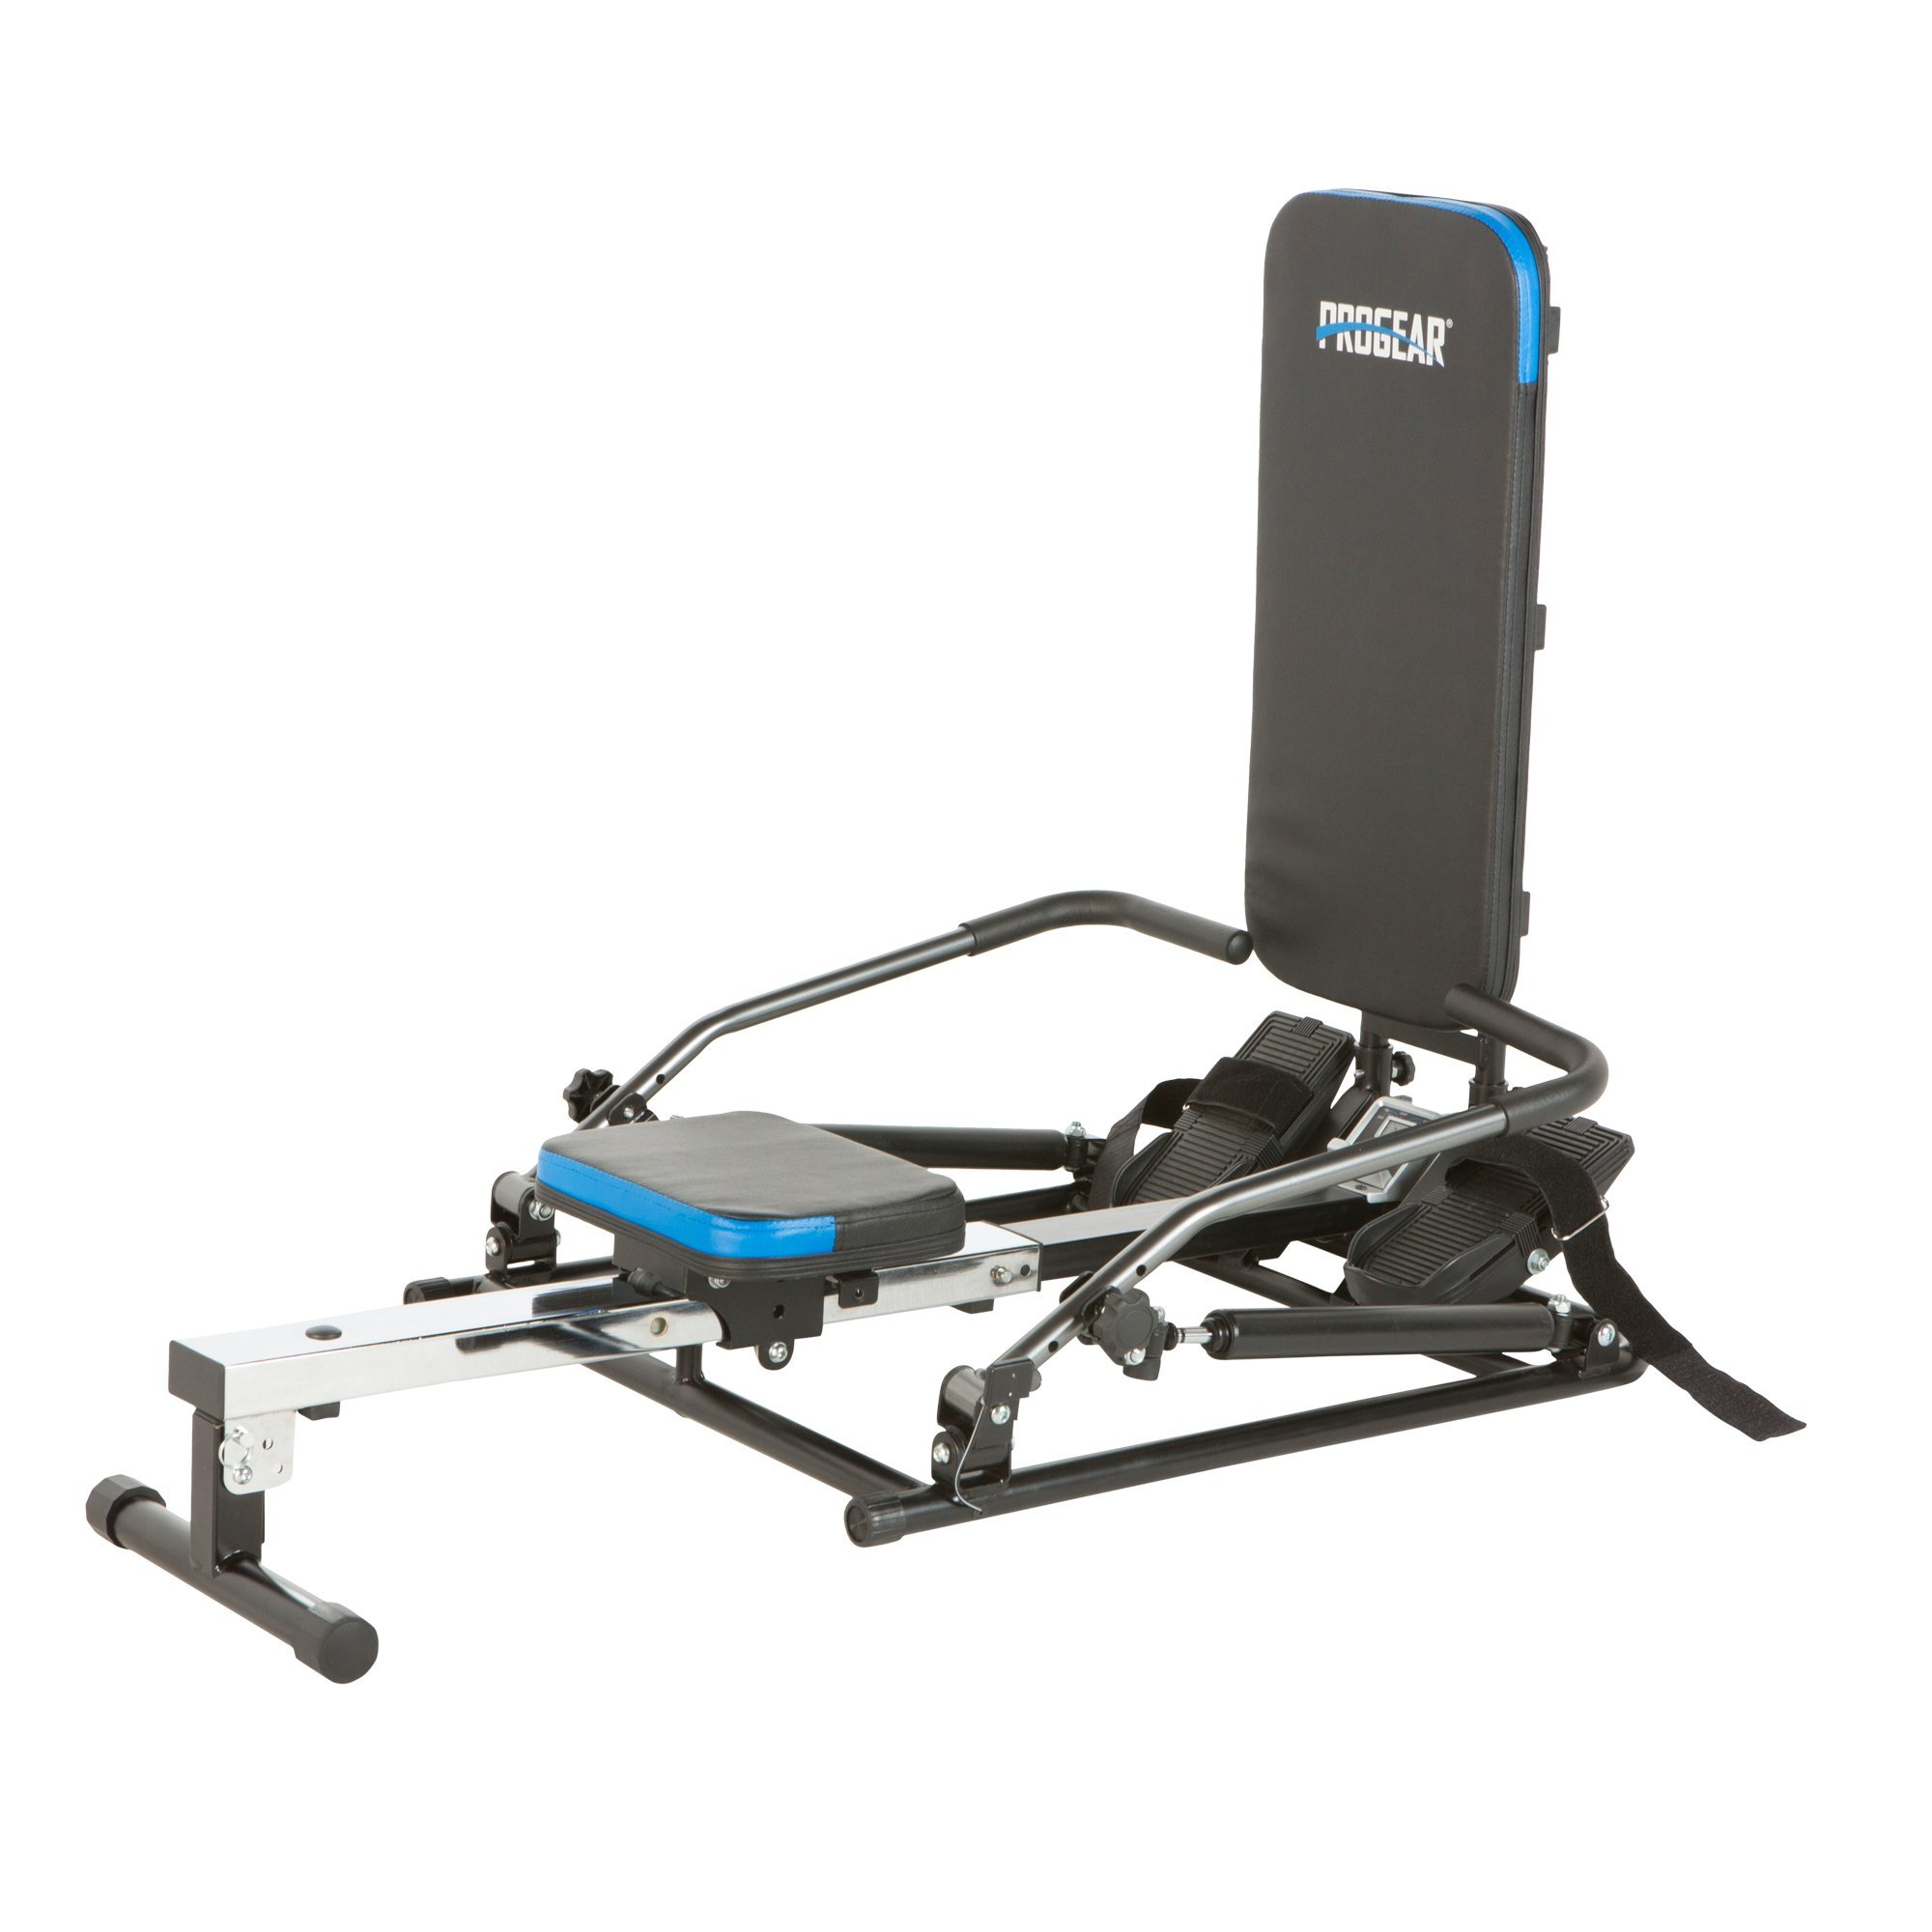 ProGear 750 Rower with Additional Multi Exercise Workout Capability, Black by ProGear (Image #1)